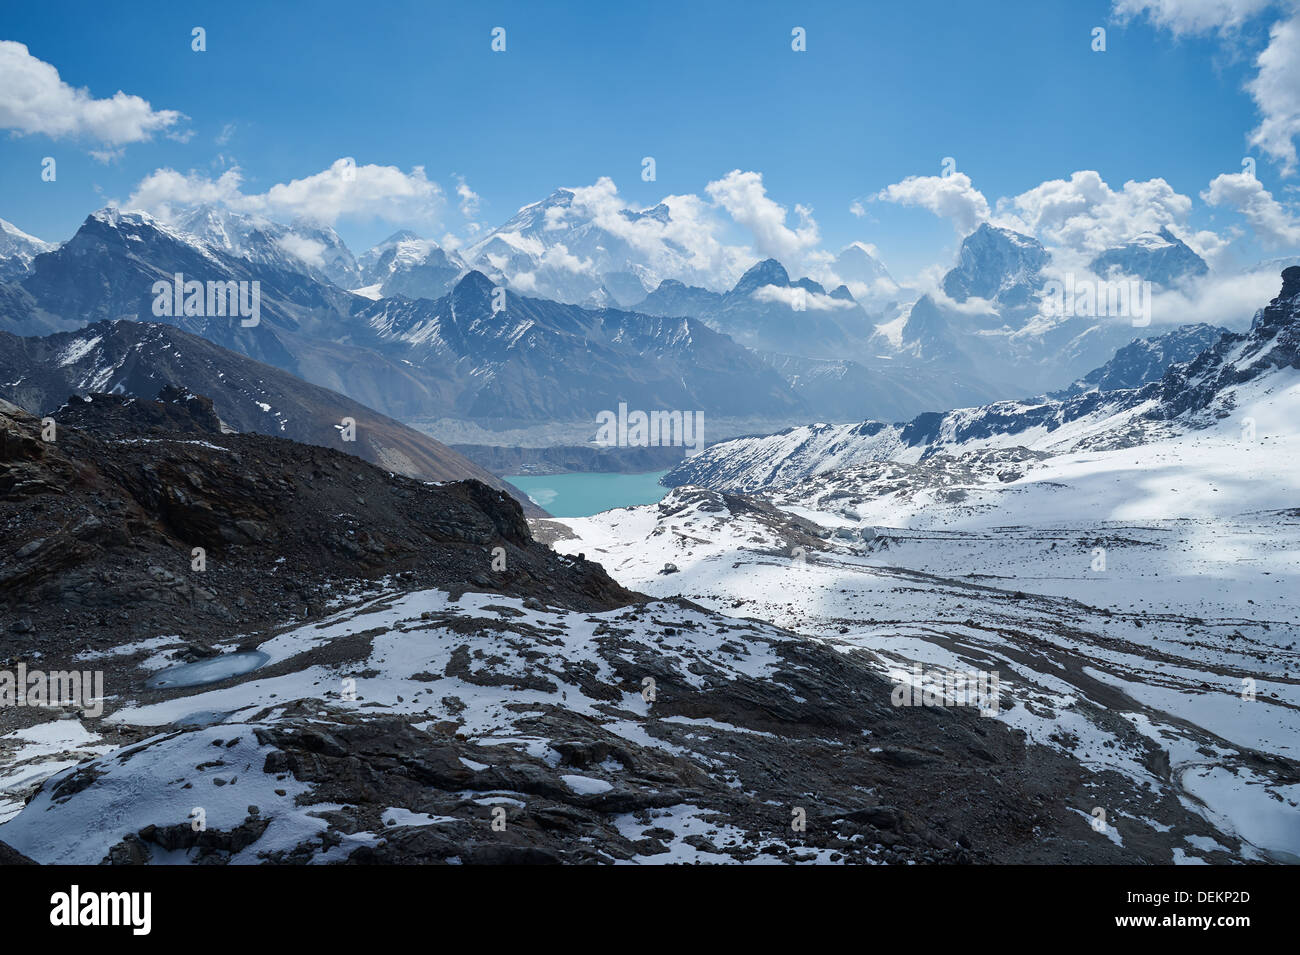 View from Renjo La pass, Nepalese Himalayas, Everest Region, looking towards Gokyo - Stock Image